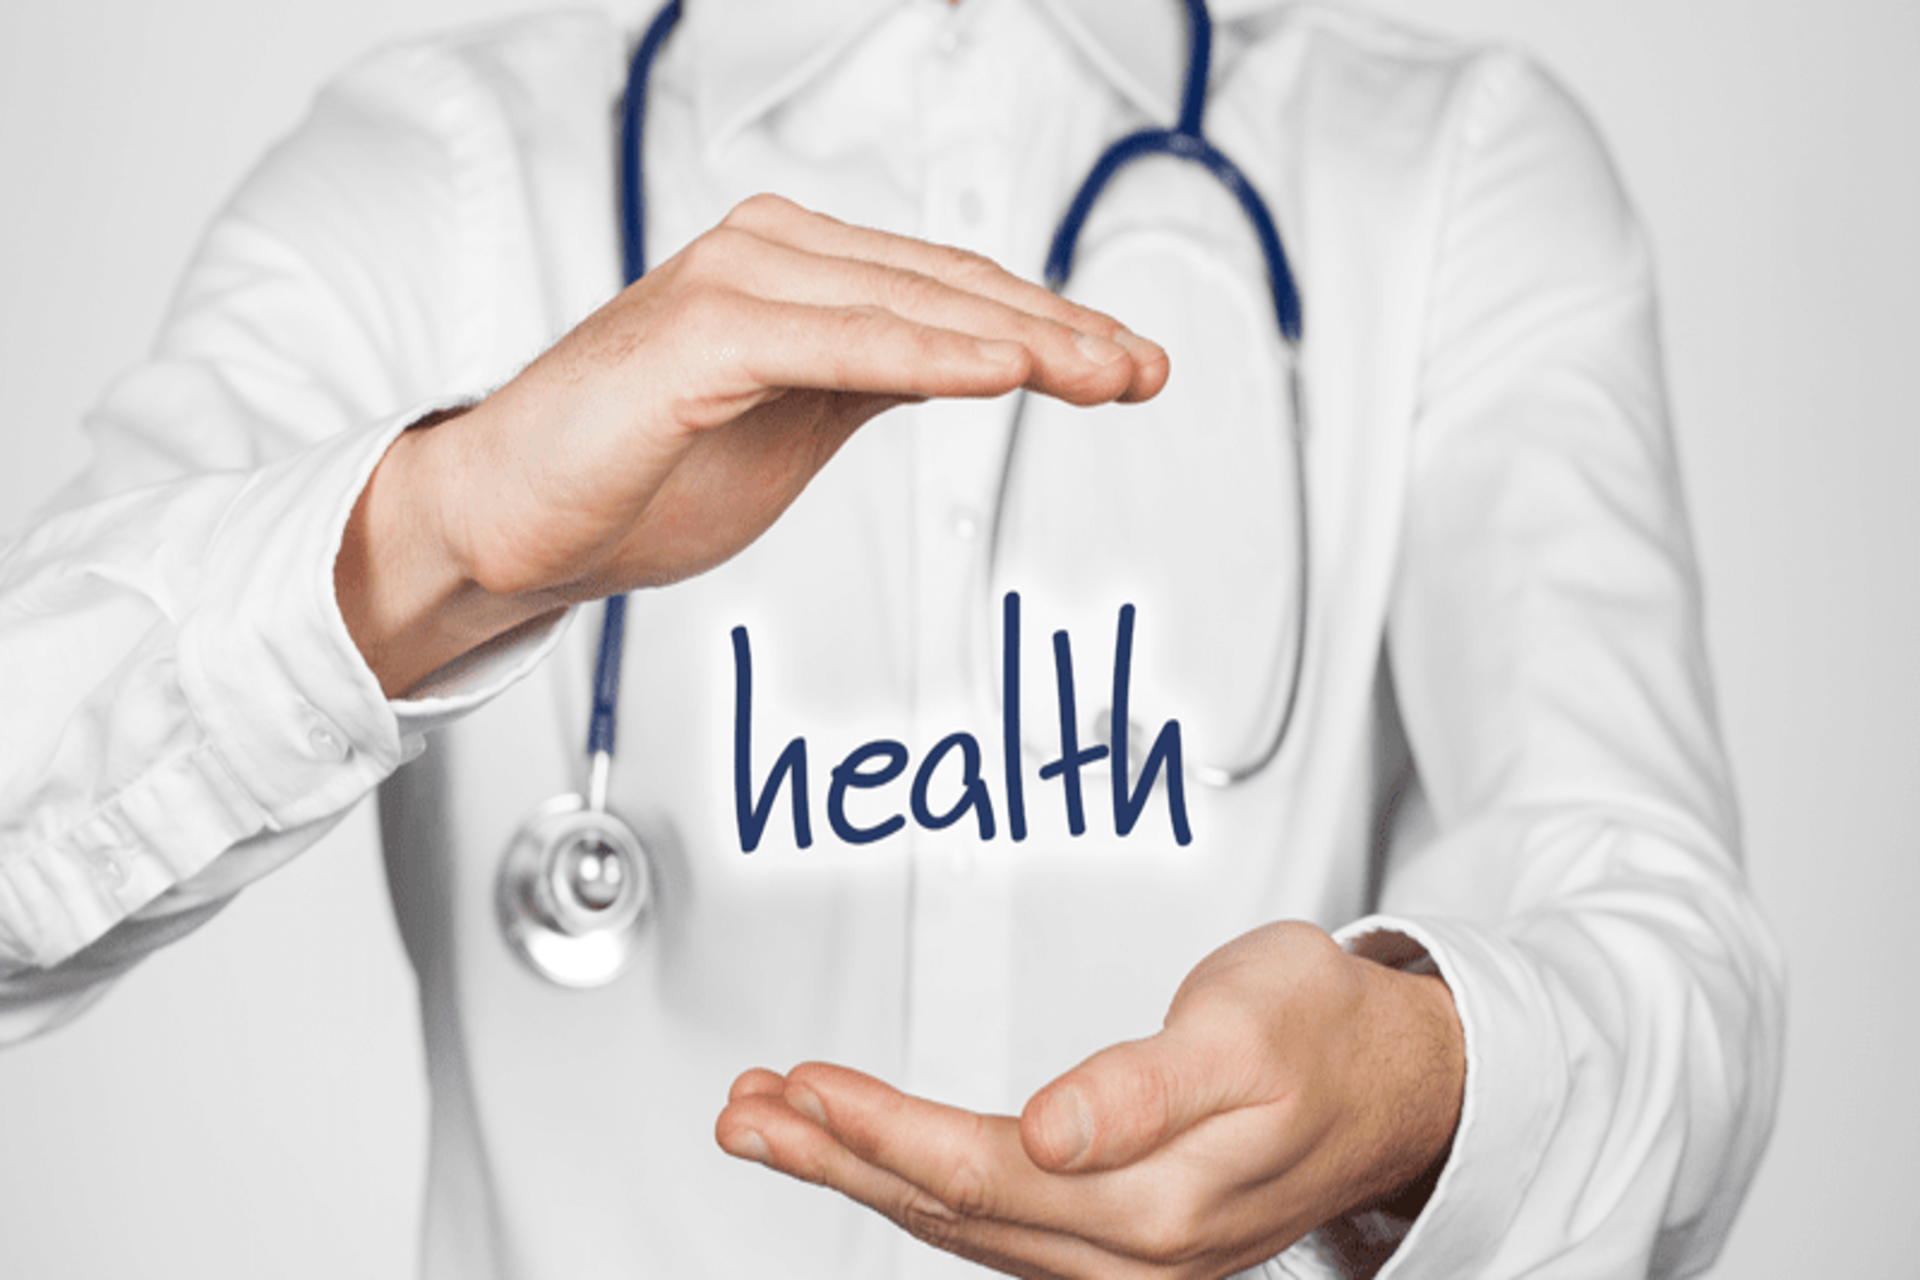 Are you still enrolled in an individual health insurance plan